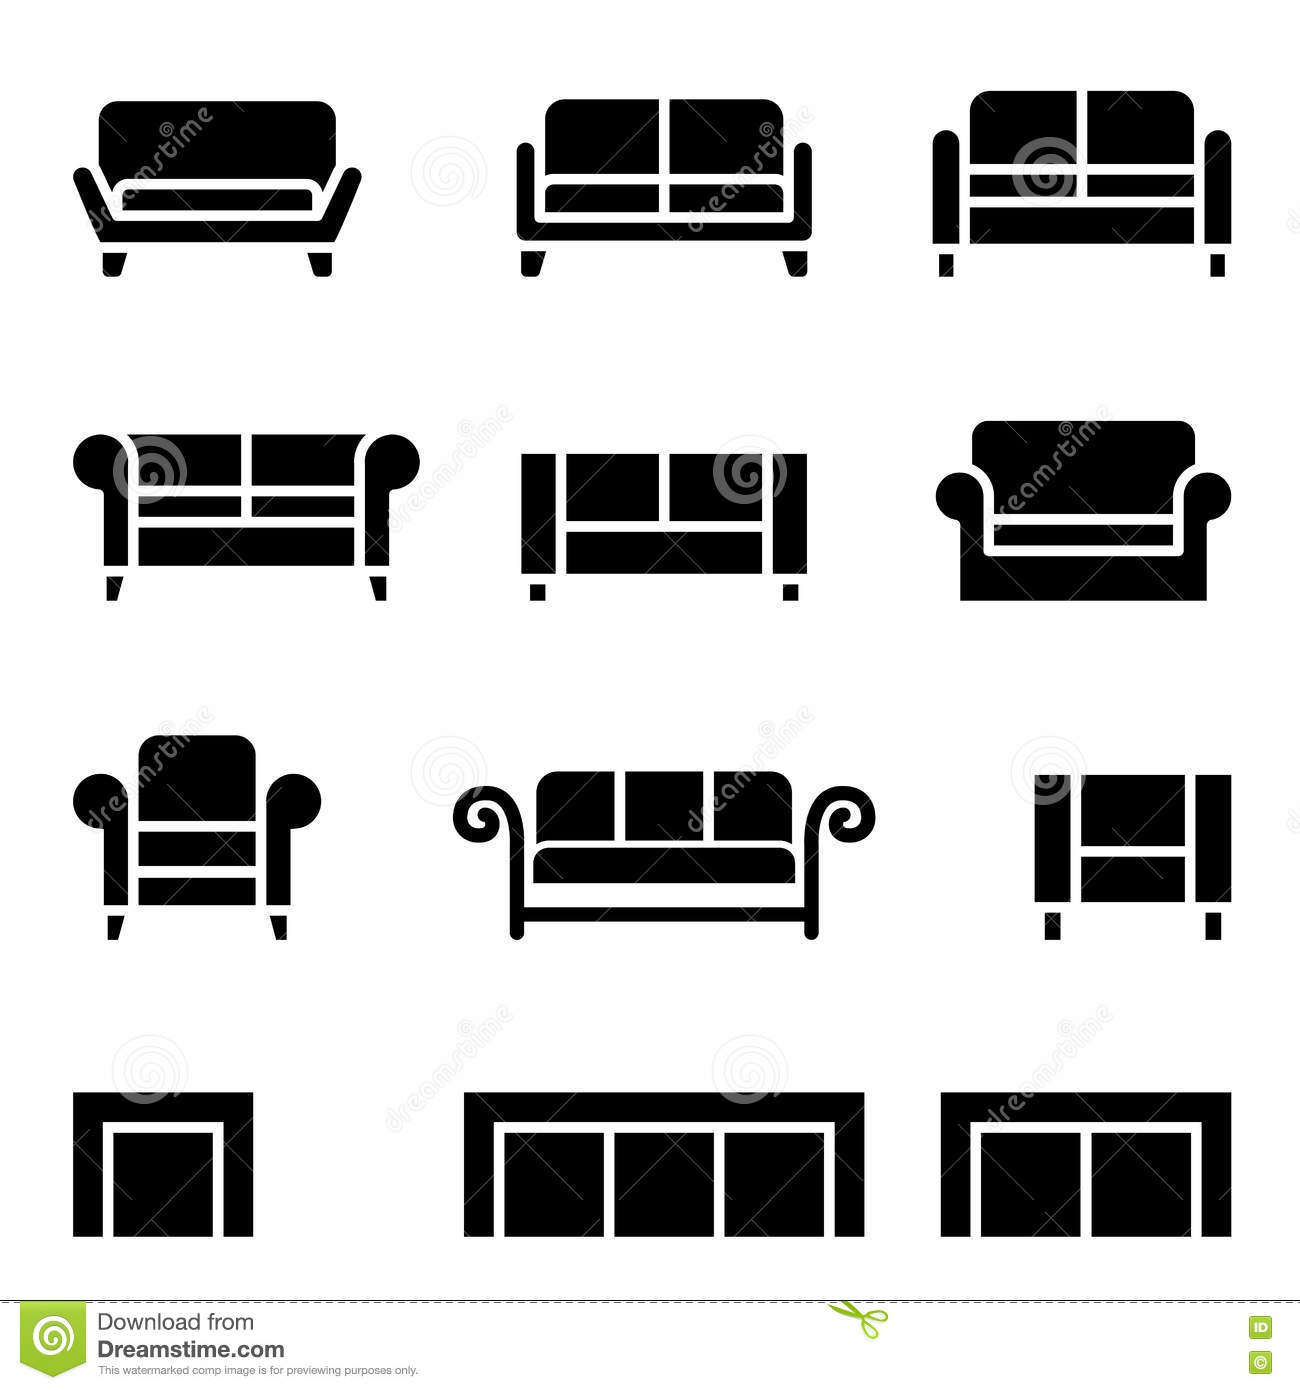 Best Feng Shui Floor Plans as well Sofa Dimensions moreover How To Design A Living Room Layouts With Modern Home Design Style besides Stock Illustration Top View Furniture Icons Available High Resolution Several Sizes To Fit Needs Your Project Image55520576 furthermore Tree top view. on sofa and bed set